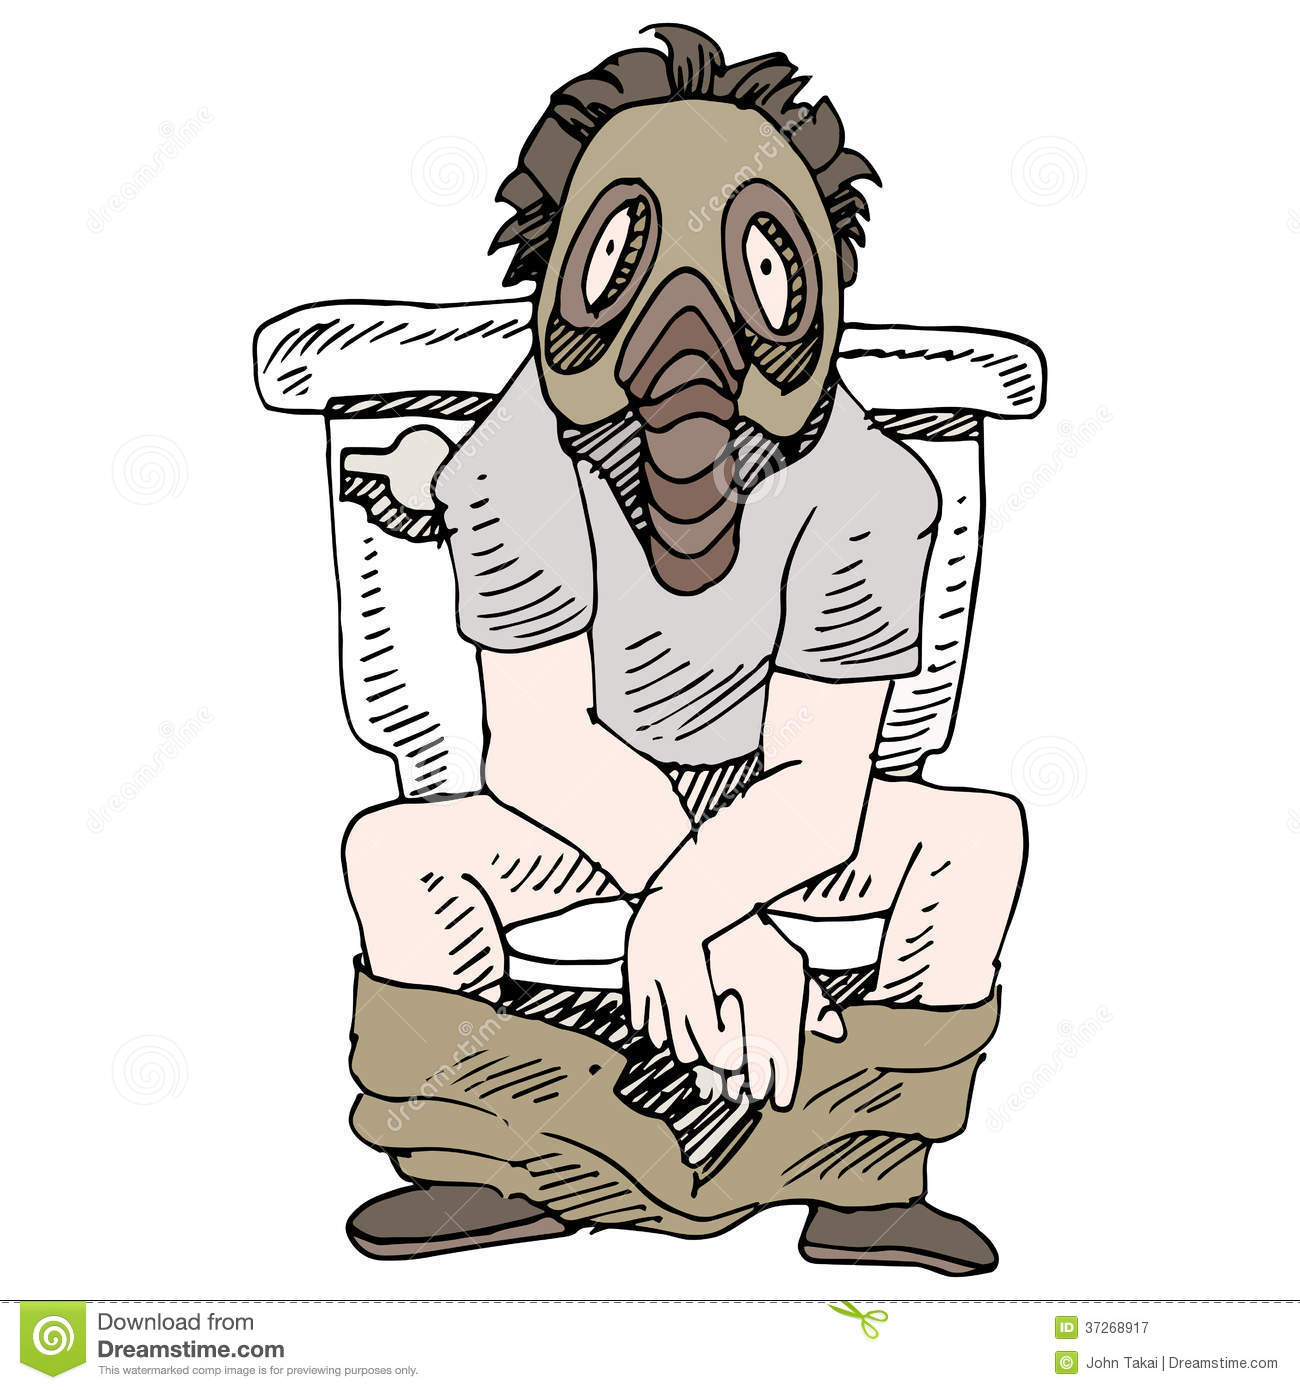 smelly-toilet-image-man-sitting-wearing-gas-mask-37268917.jpg